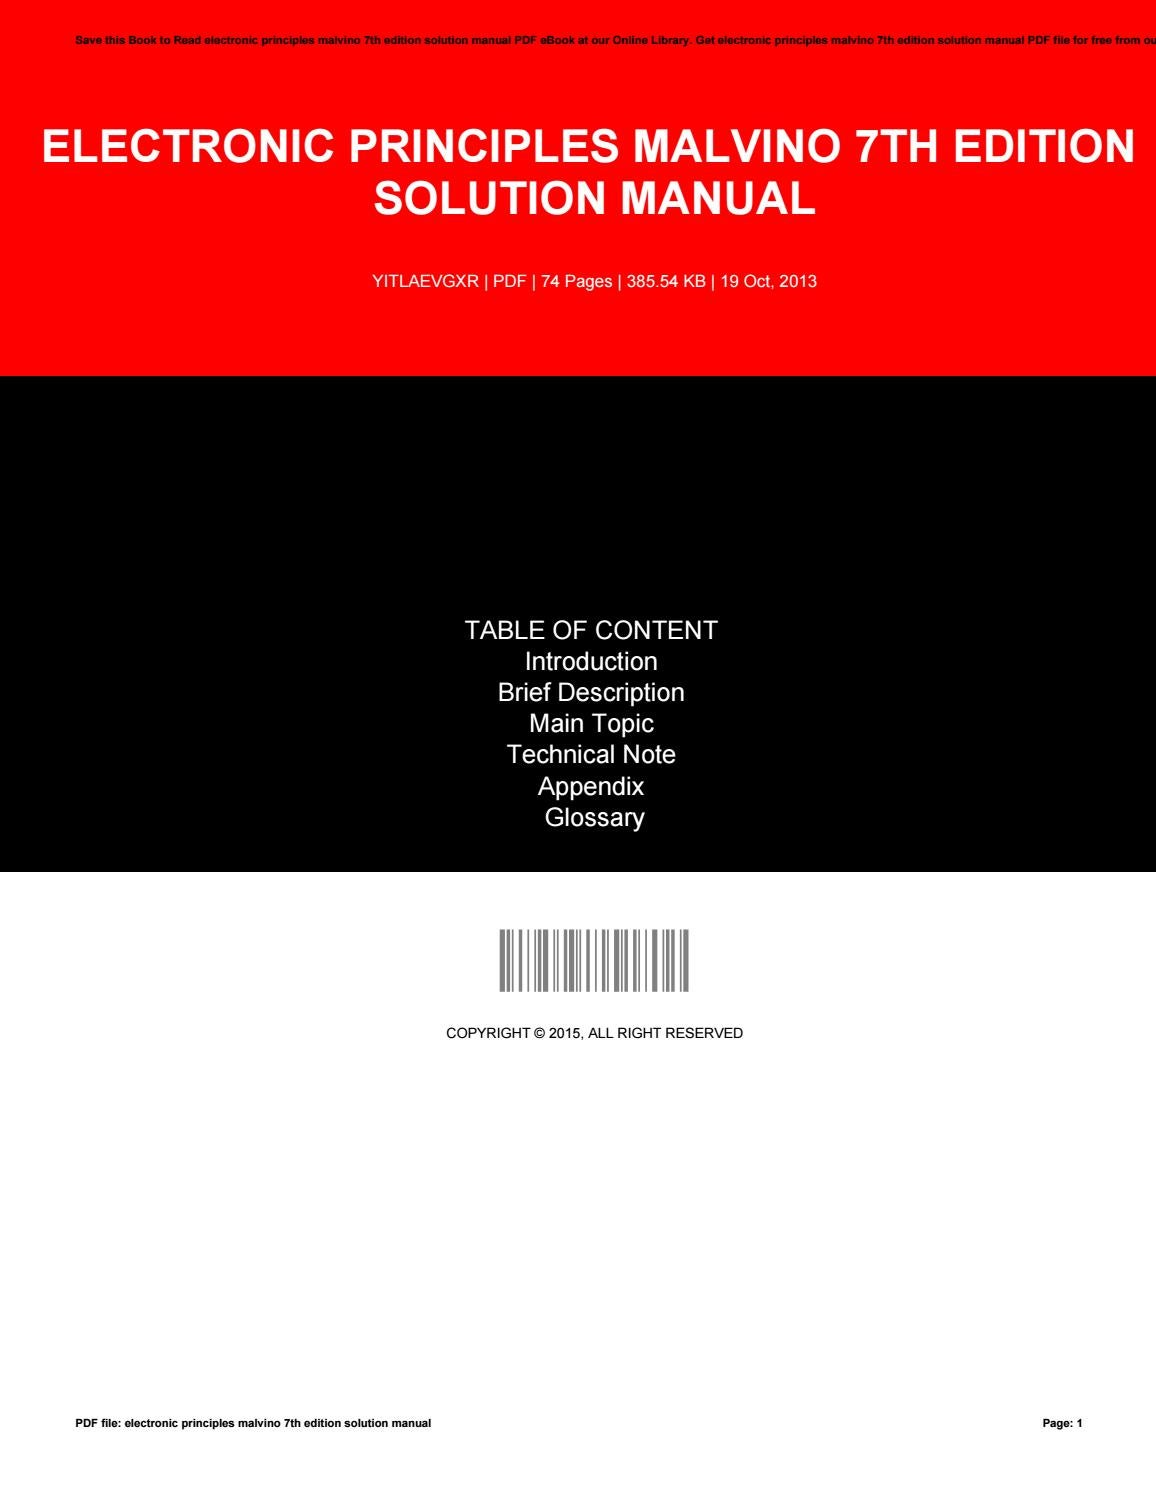 Electronic principles malvino 7th edition solution manual by  VickiIrvine4303 - issuu